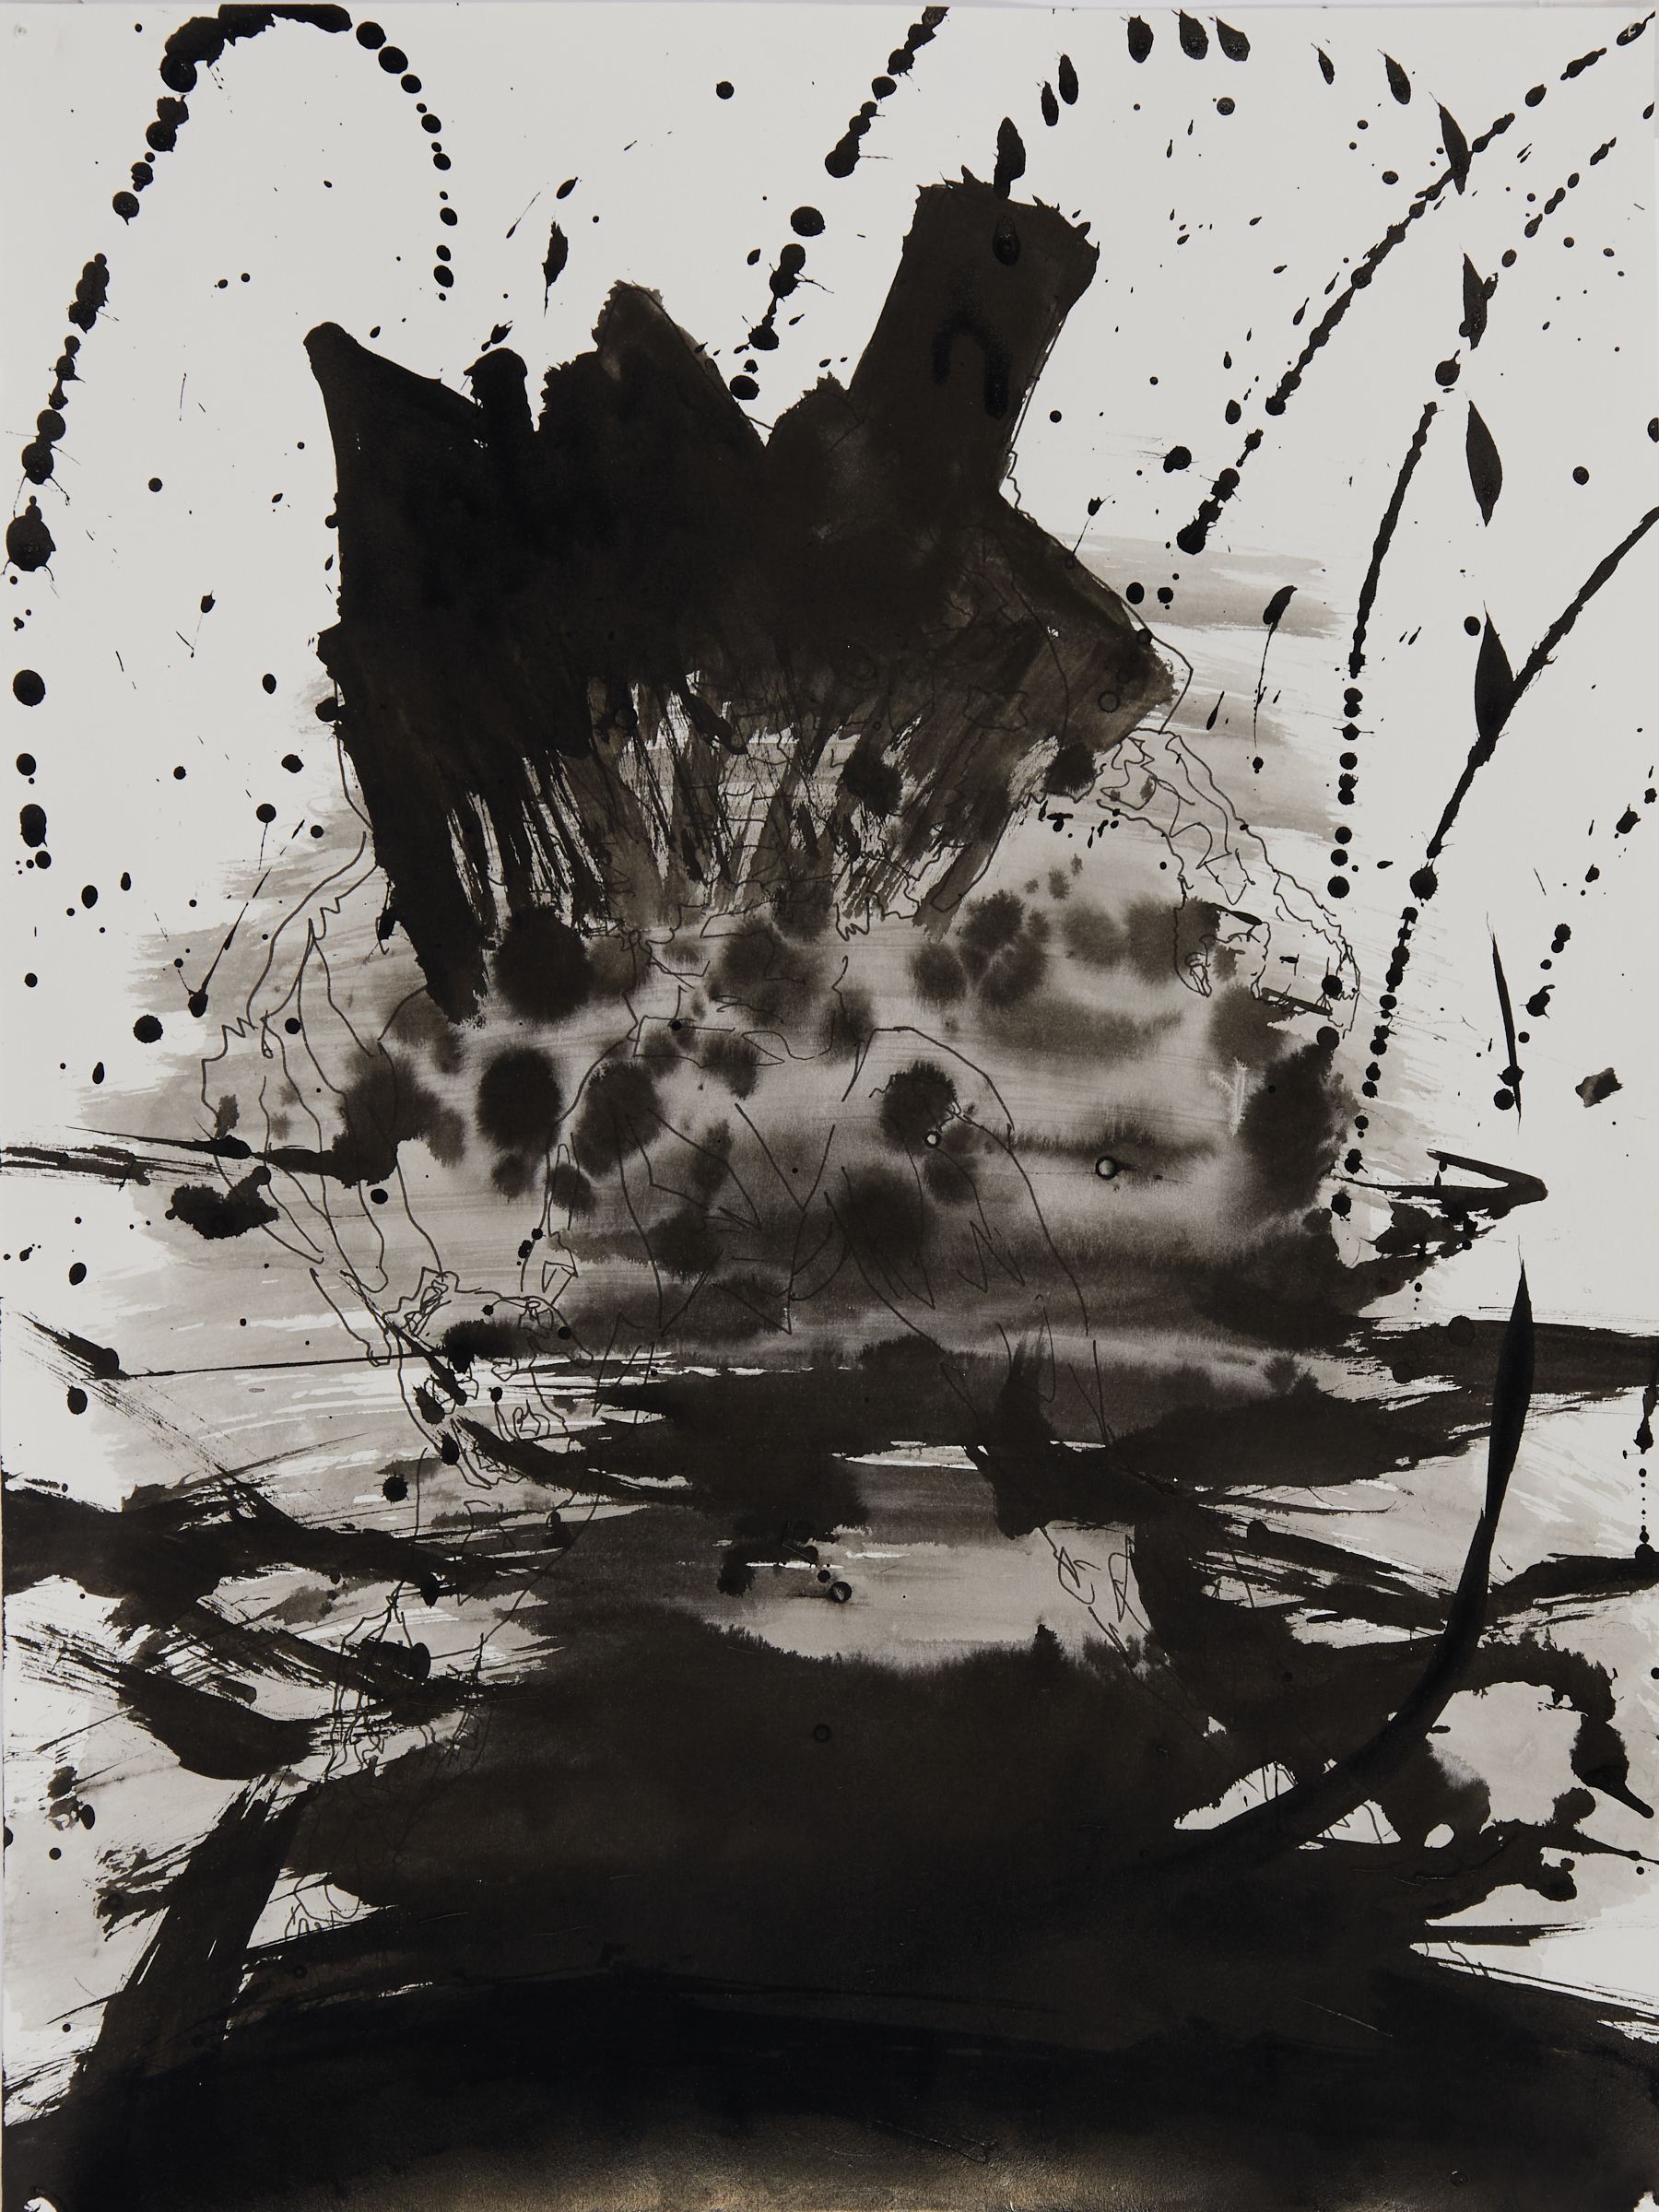 Mike Jones, Aftermath, 2020, Sumi ink and pencil, 9 x 12 inches